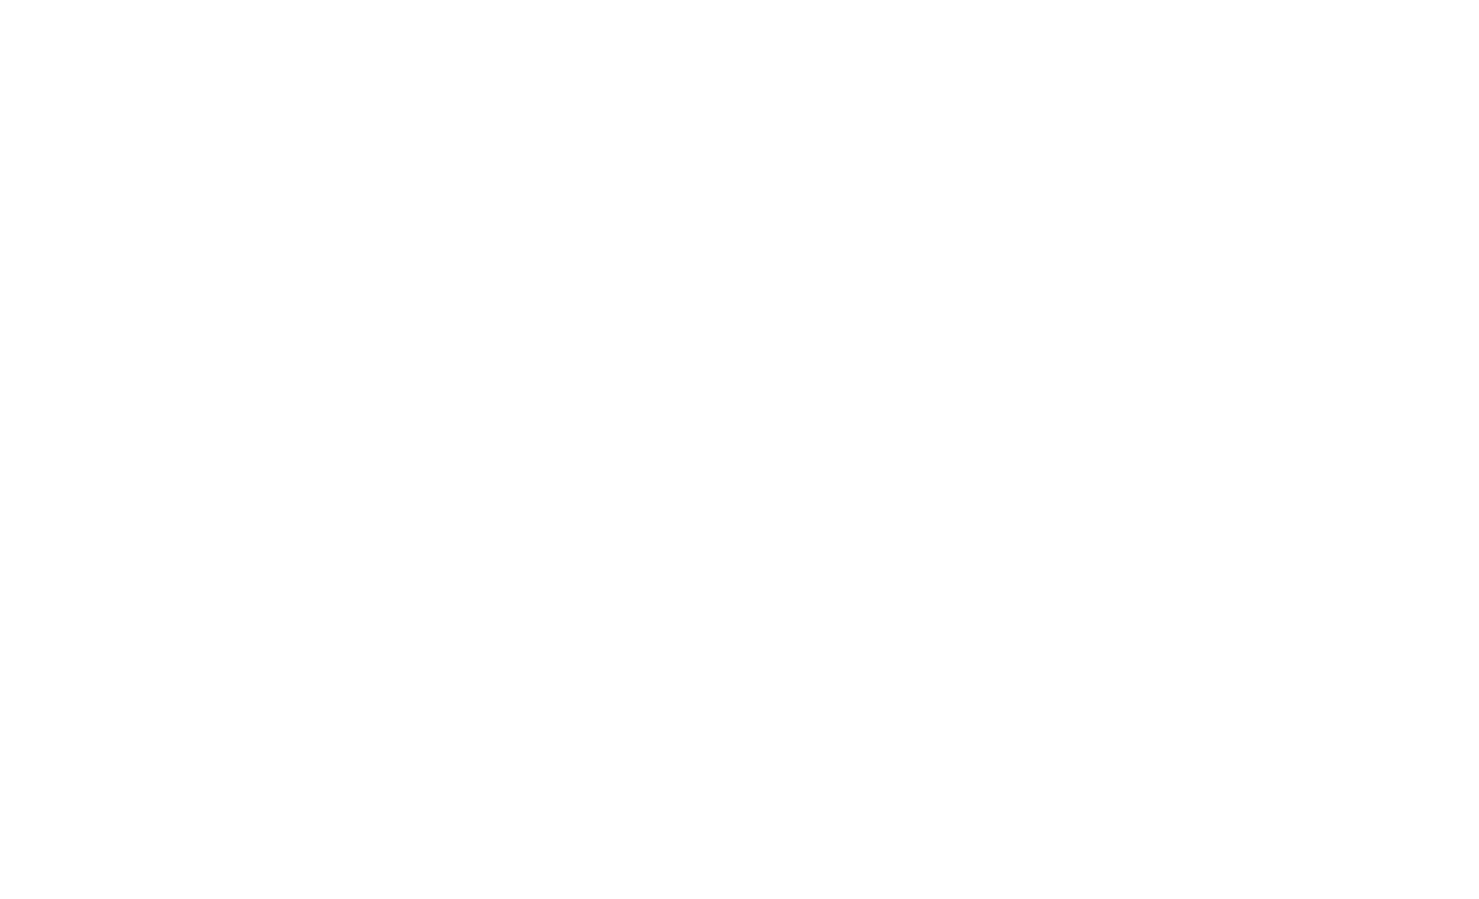 Iron Mining Association - Careers in mining-more than you'd expect